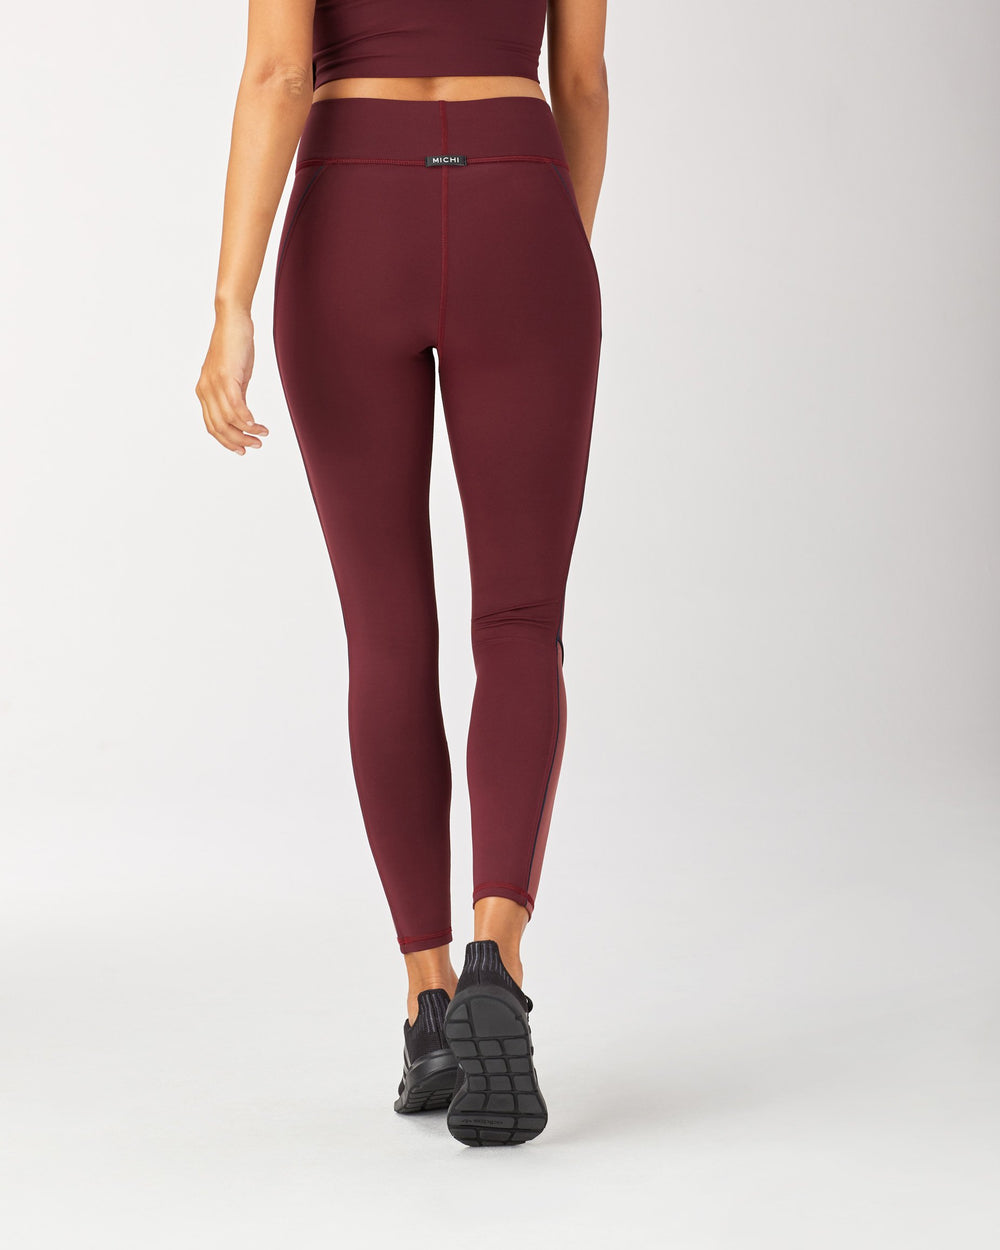 Baltic Pocket Legging - Wine/Spice